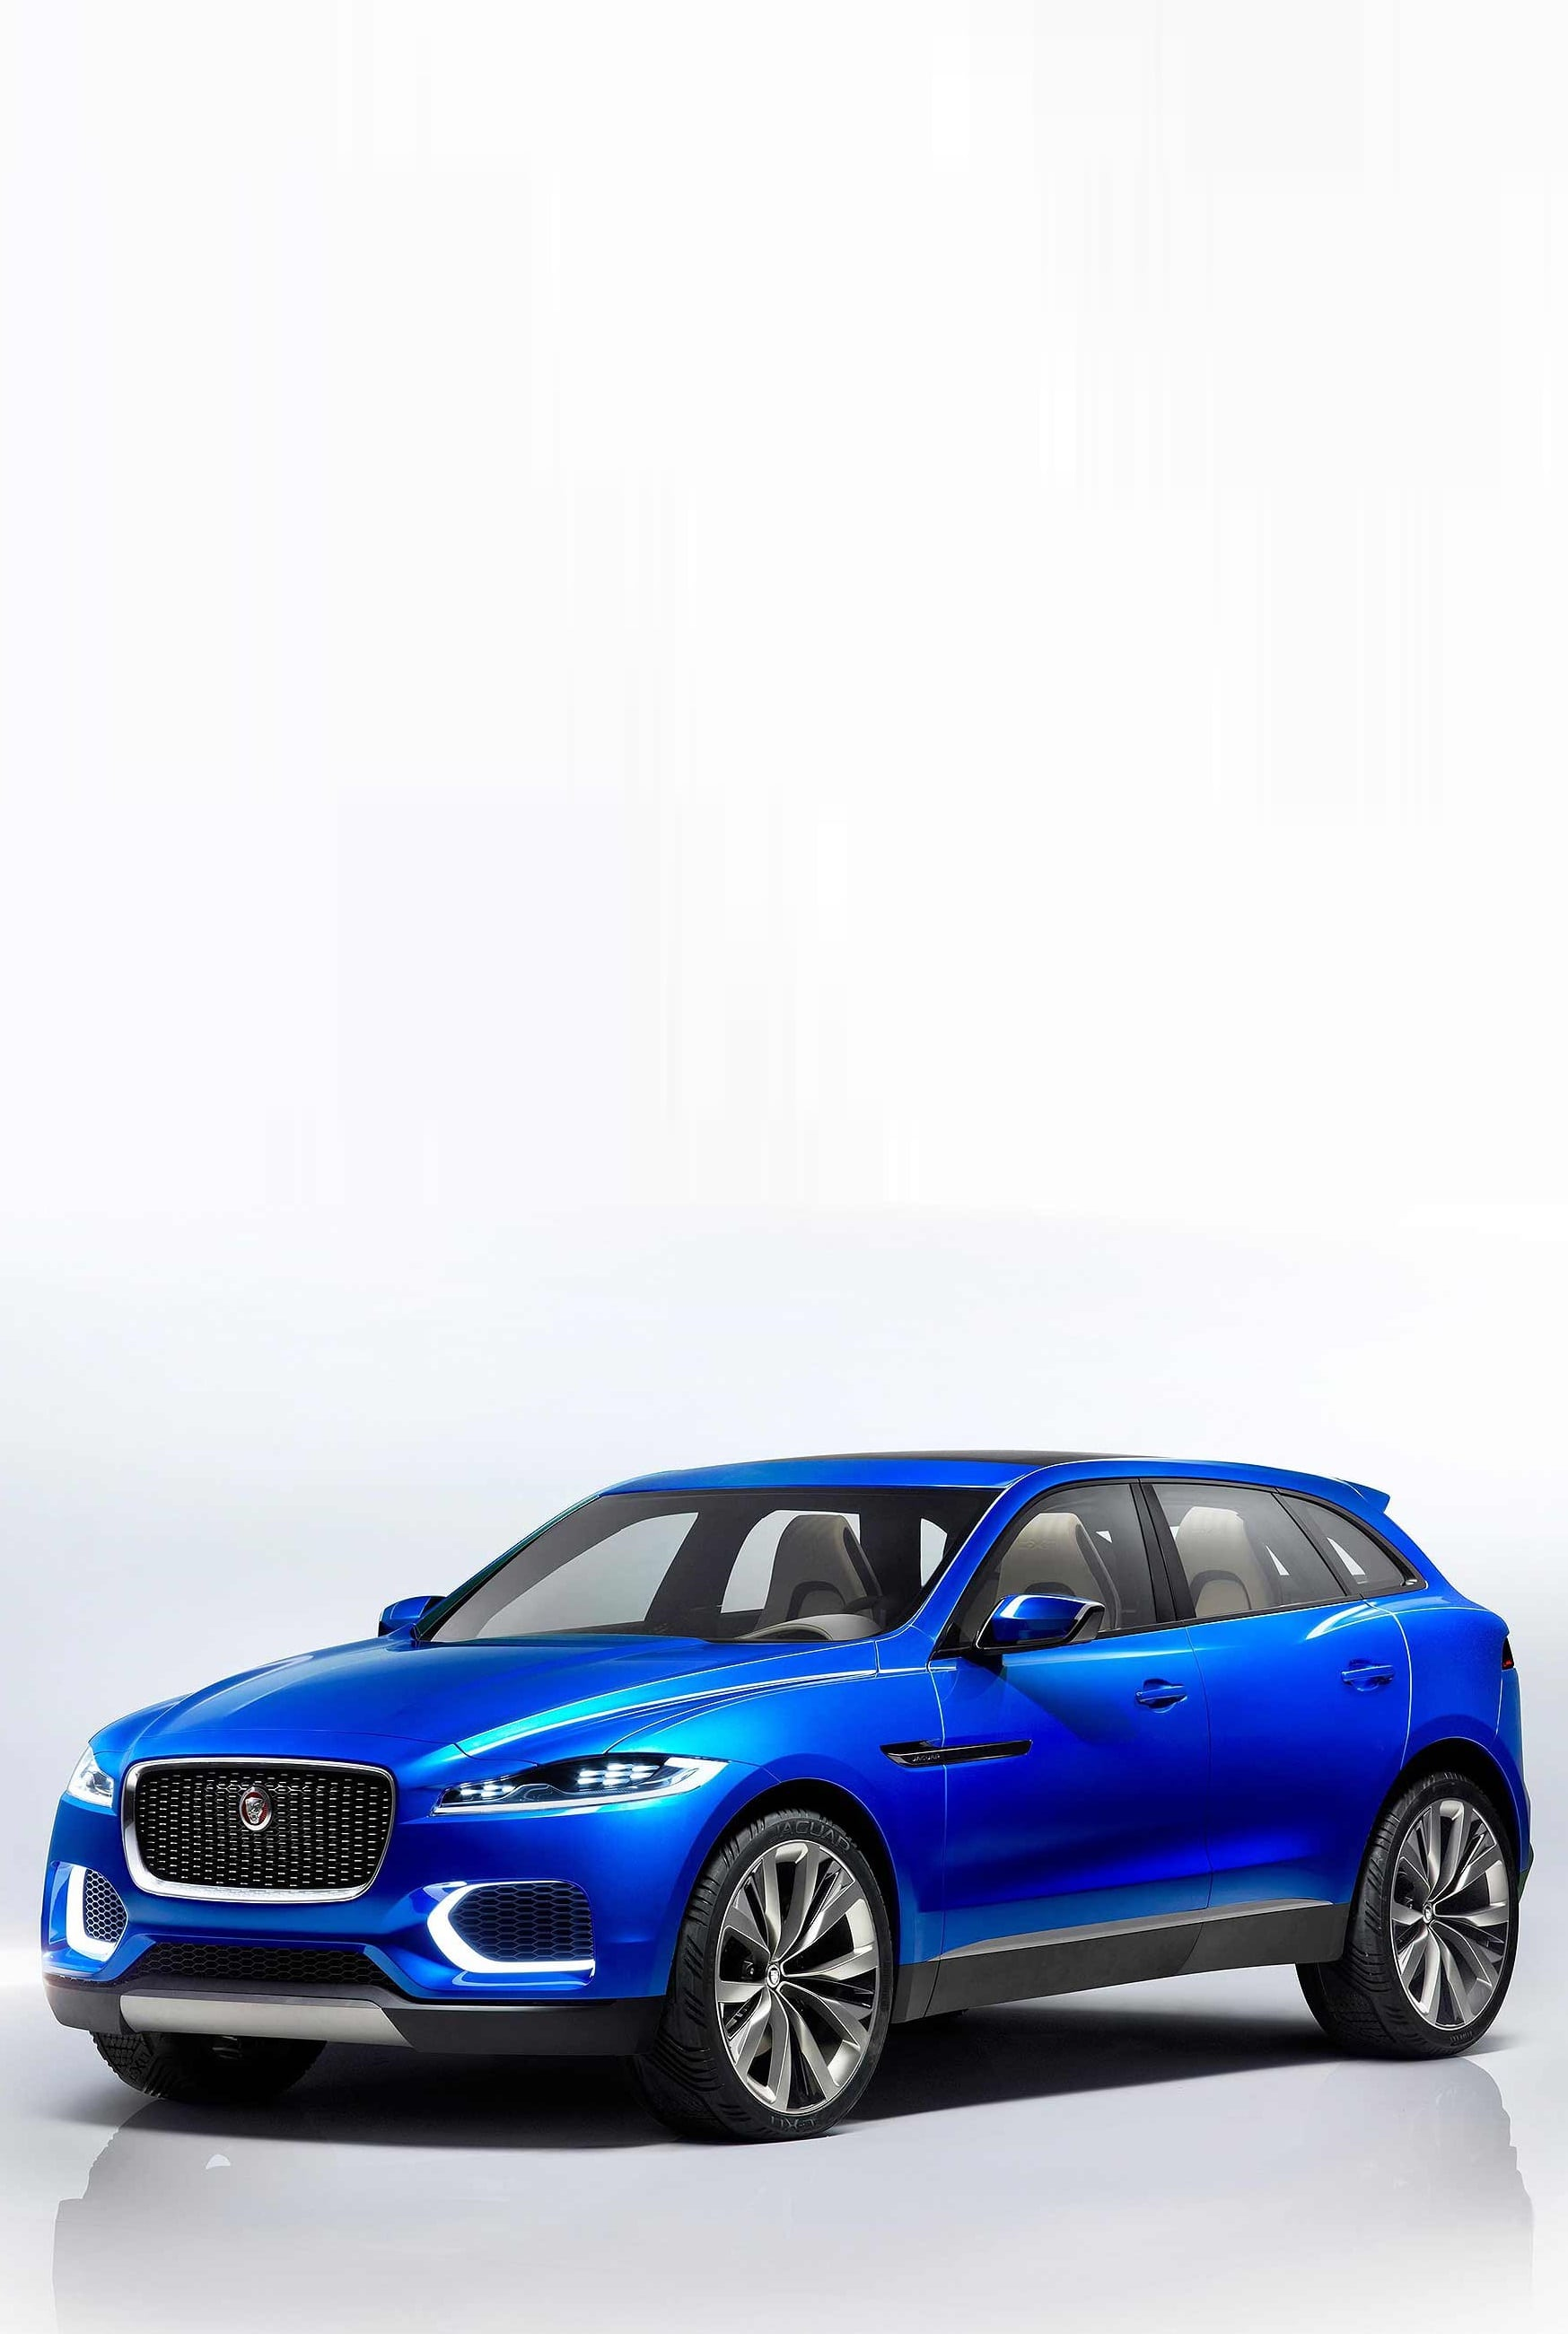 Jaguar F-Pace For mobile